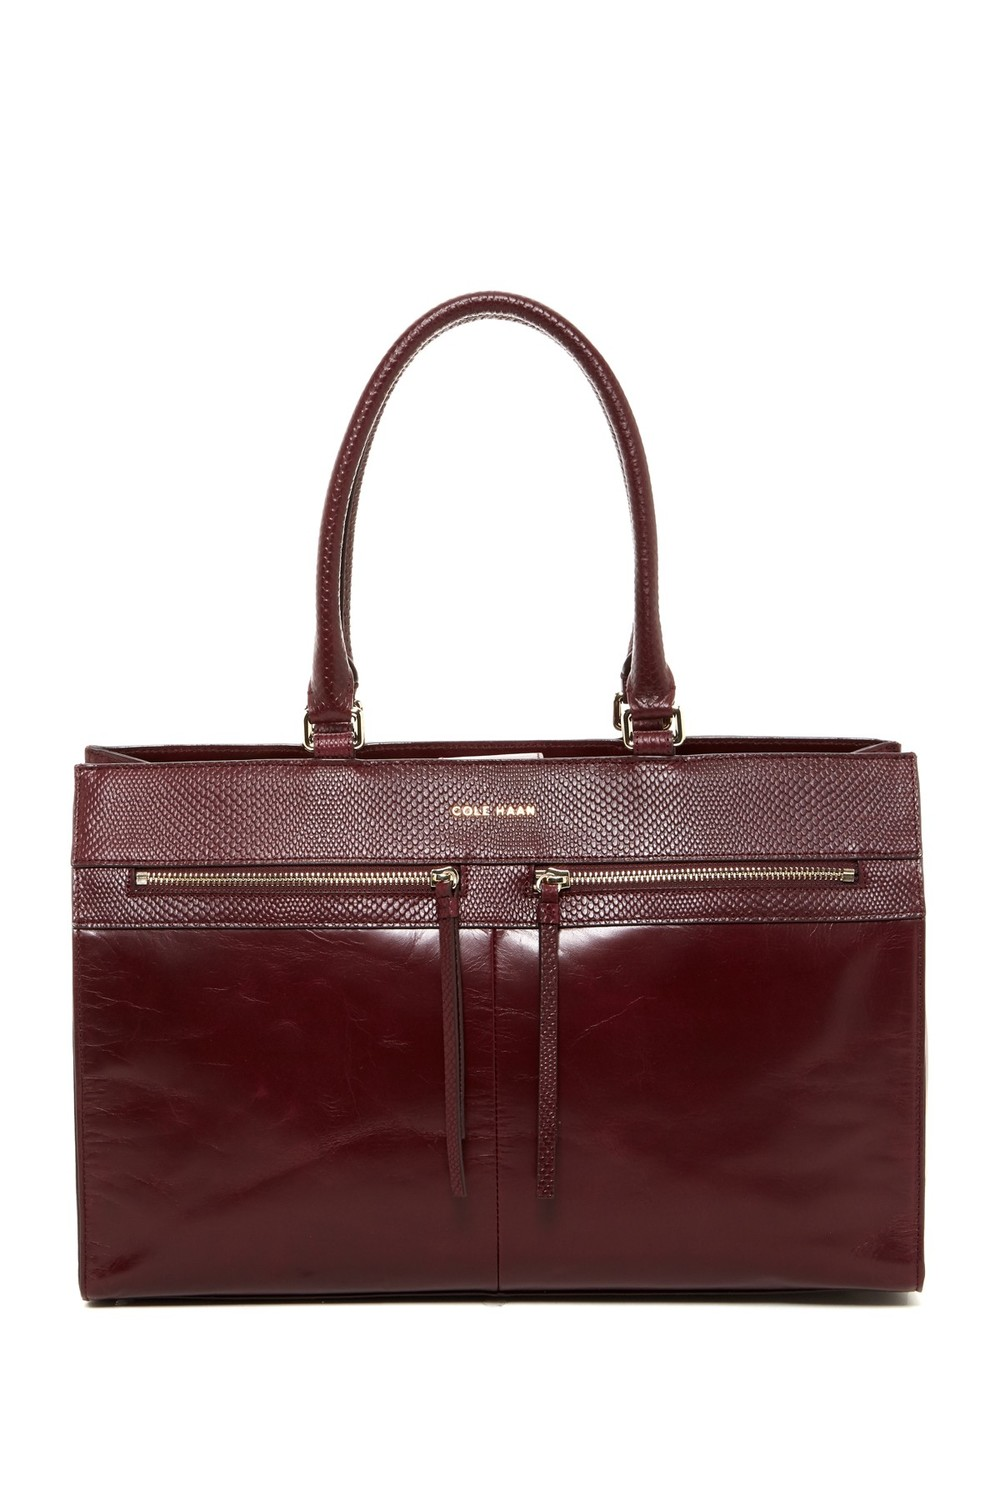 Cole Haan Reese Large Glazed Tote. Available in zinfandel, black. Nordstrom Rack. Was: $328 Now: $164.